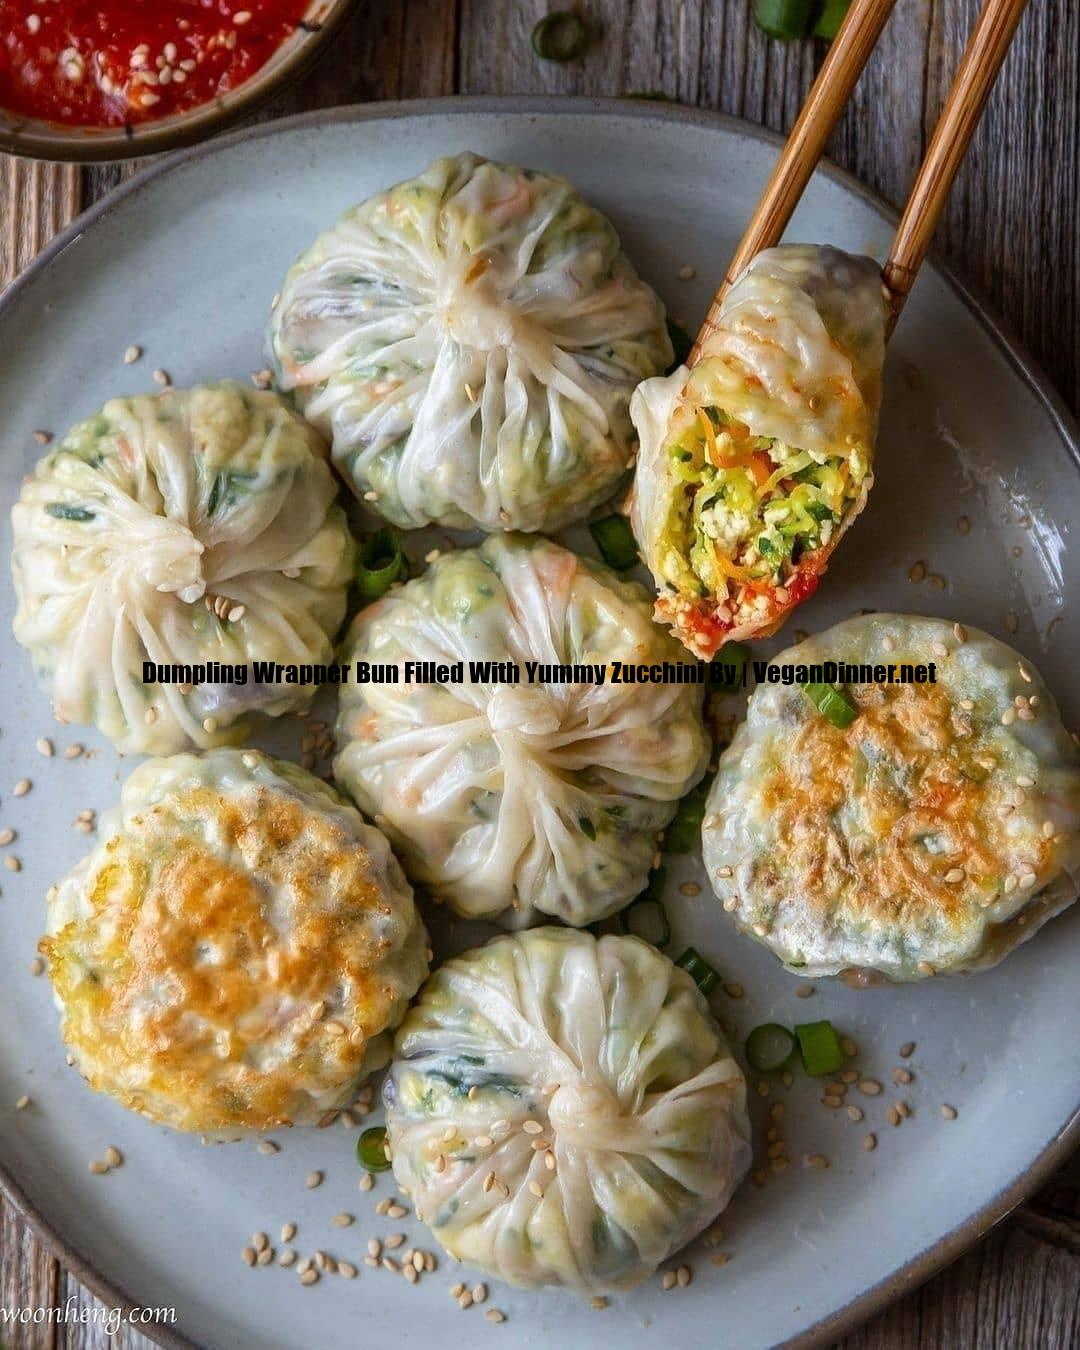 dumpling wrapper bun filled with yummy zucchini by display image bc